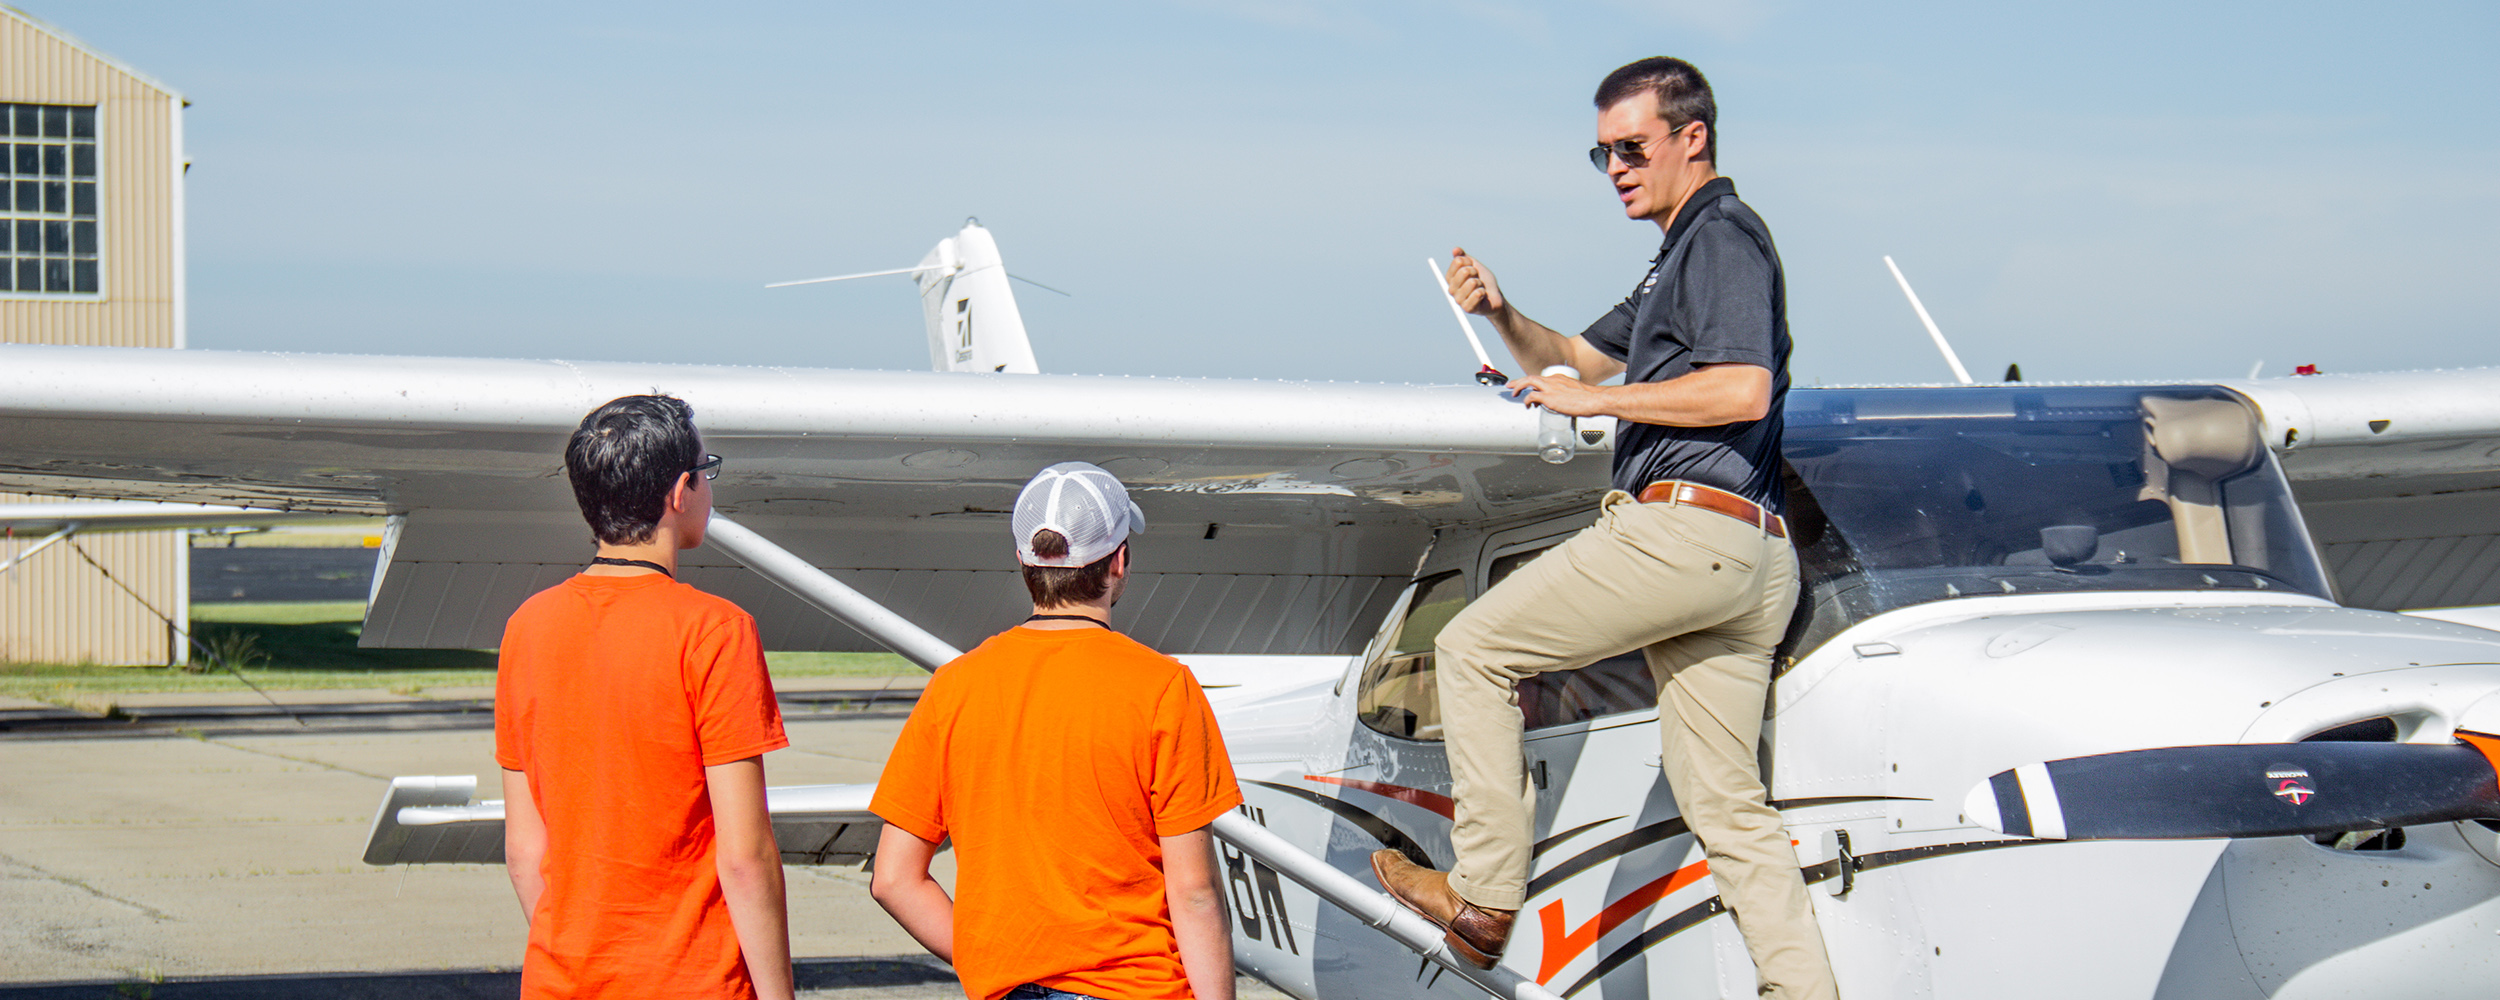 Student pilot on wing of airplane during flight camp